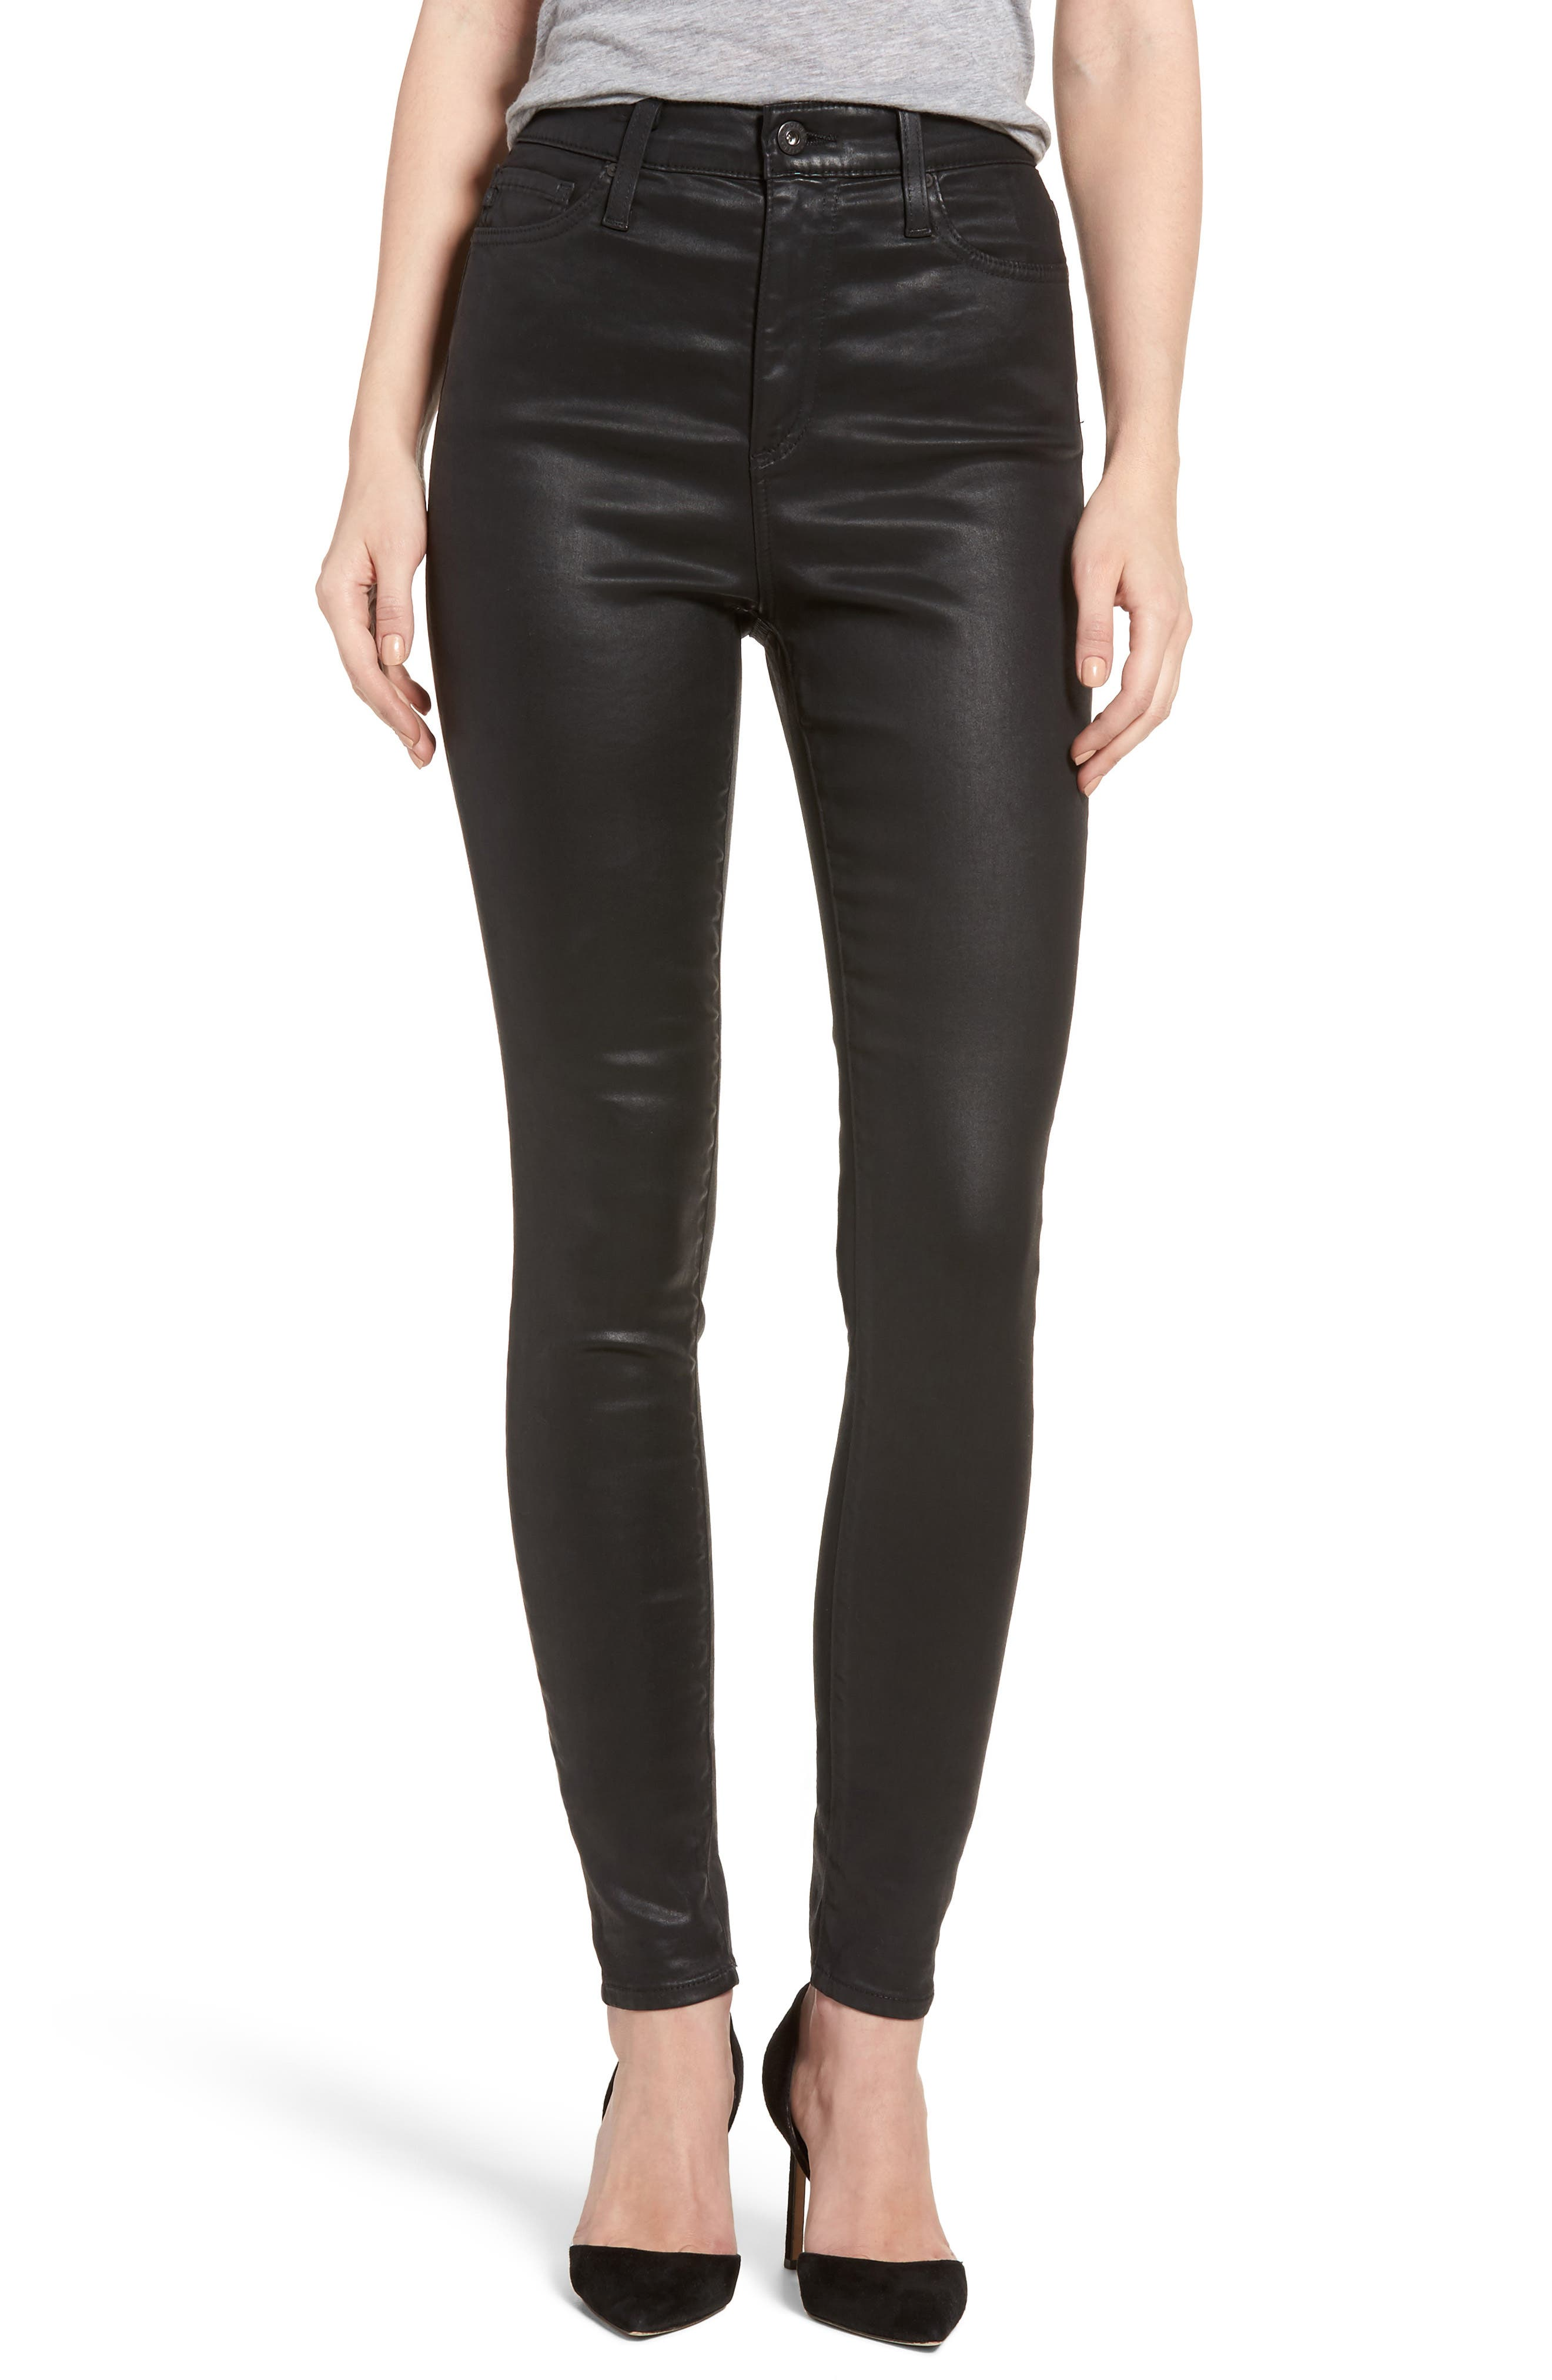 947a26c14017a8 leather pants for women | Nordstrom